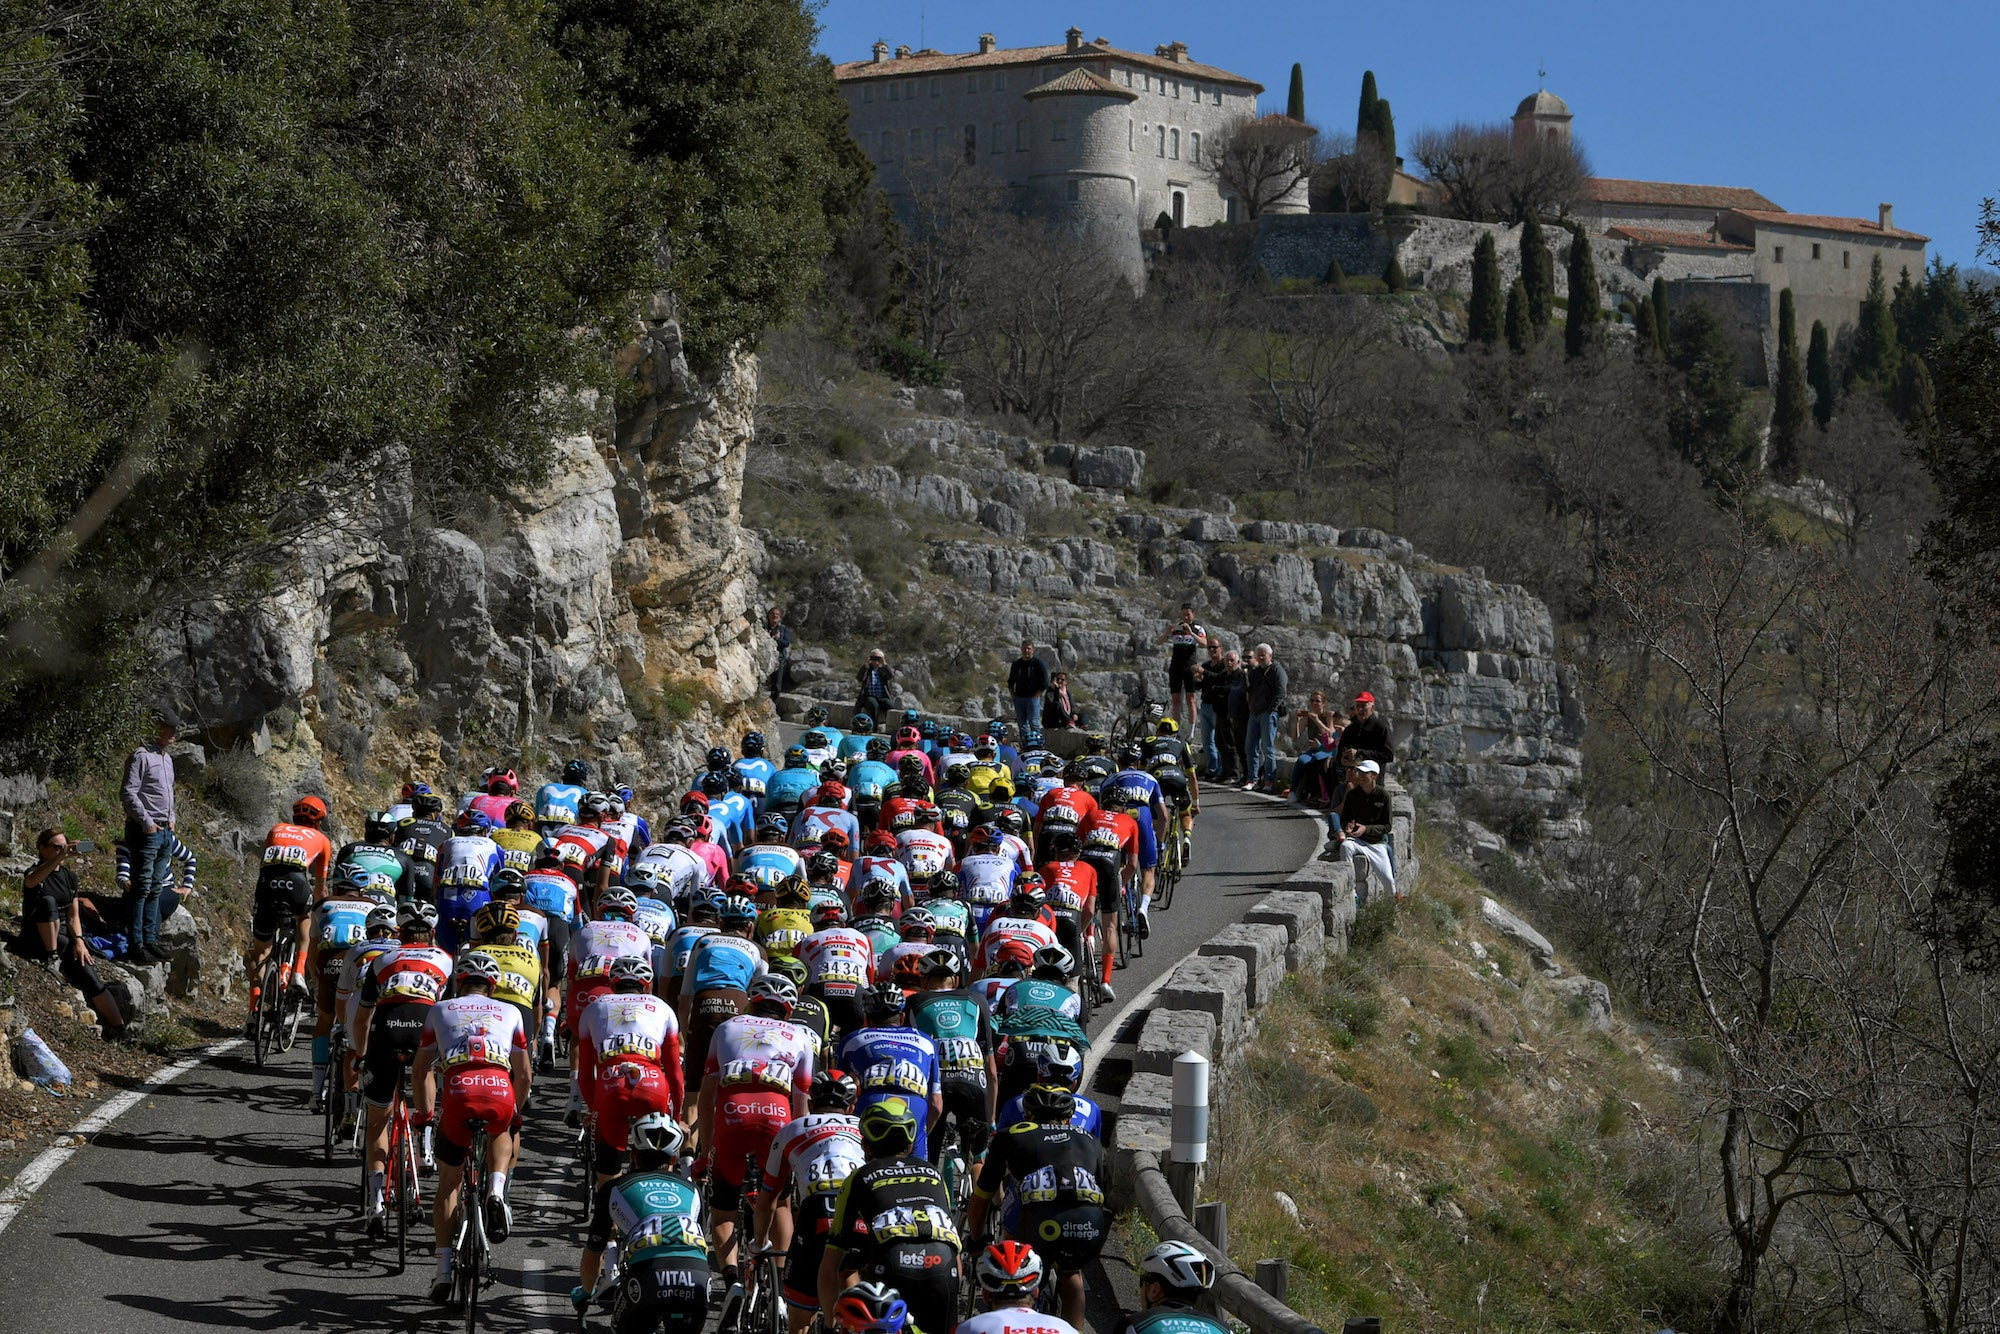 If you liked Paris-Nice, you'll love the 2020 Tour de France start